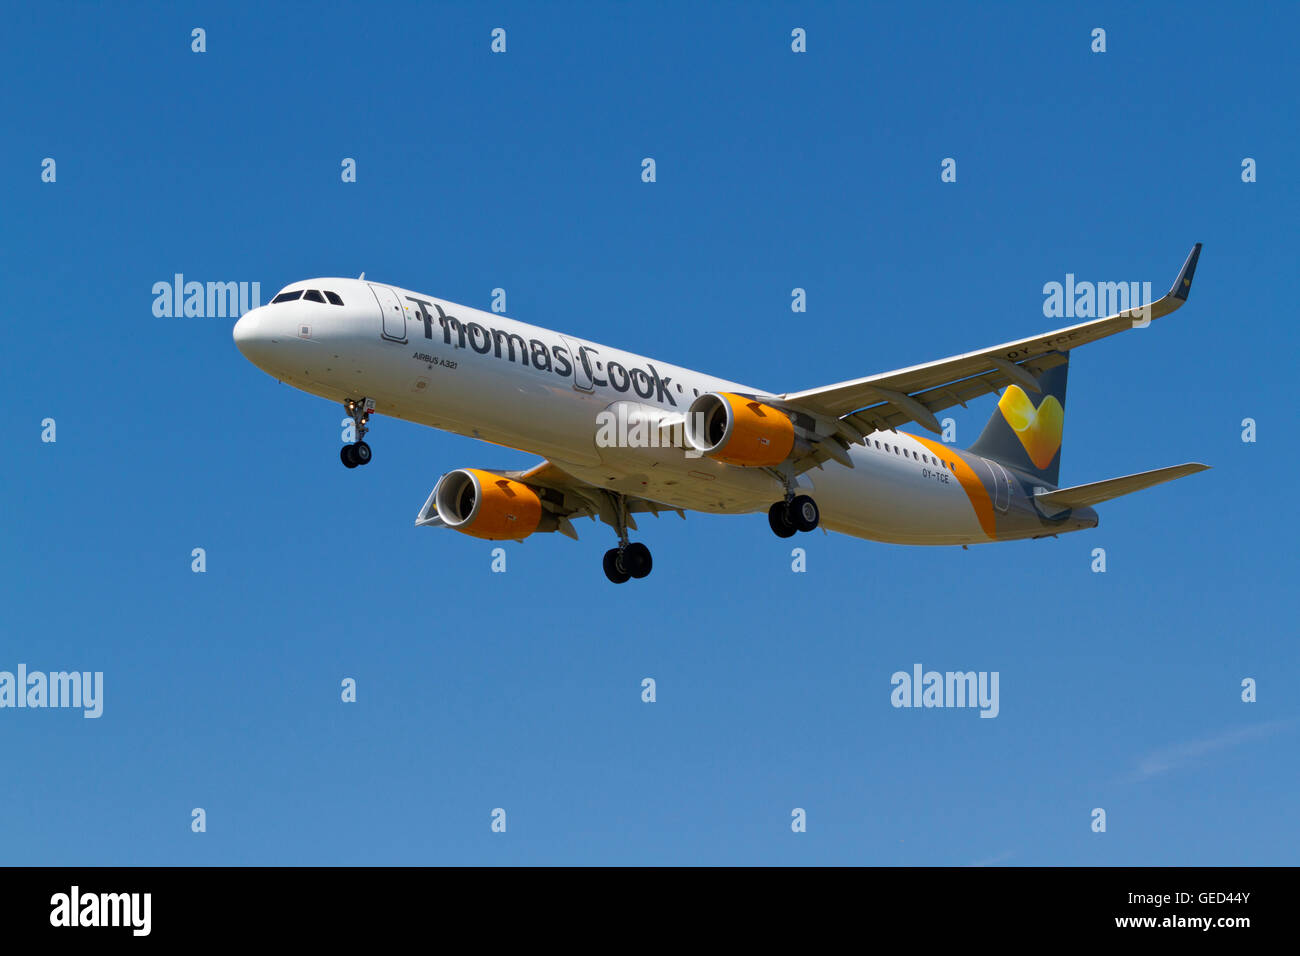 Thomas Cook Scandinavia, Airbus A321, flight DK412, OY-TCE, from Dalaman, Turkey,  on final approach to Copenhagen - Stock Image